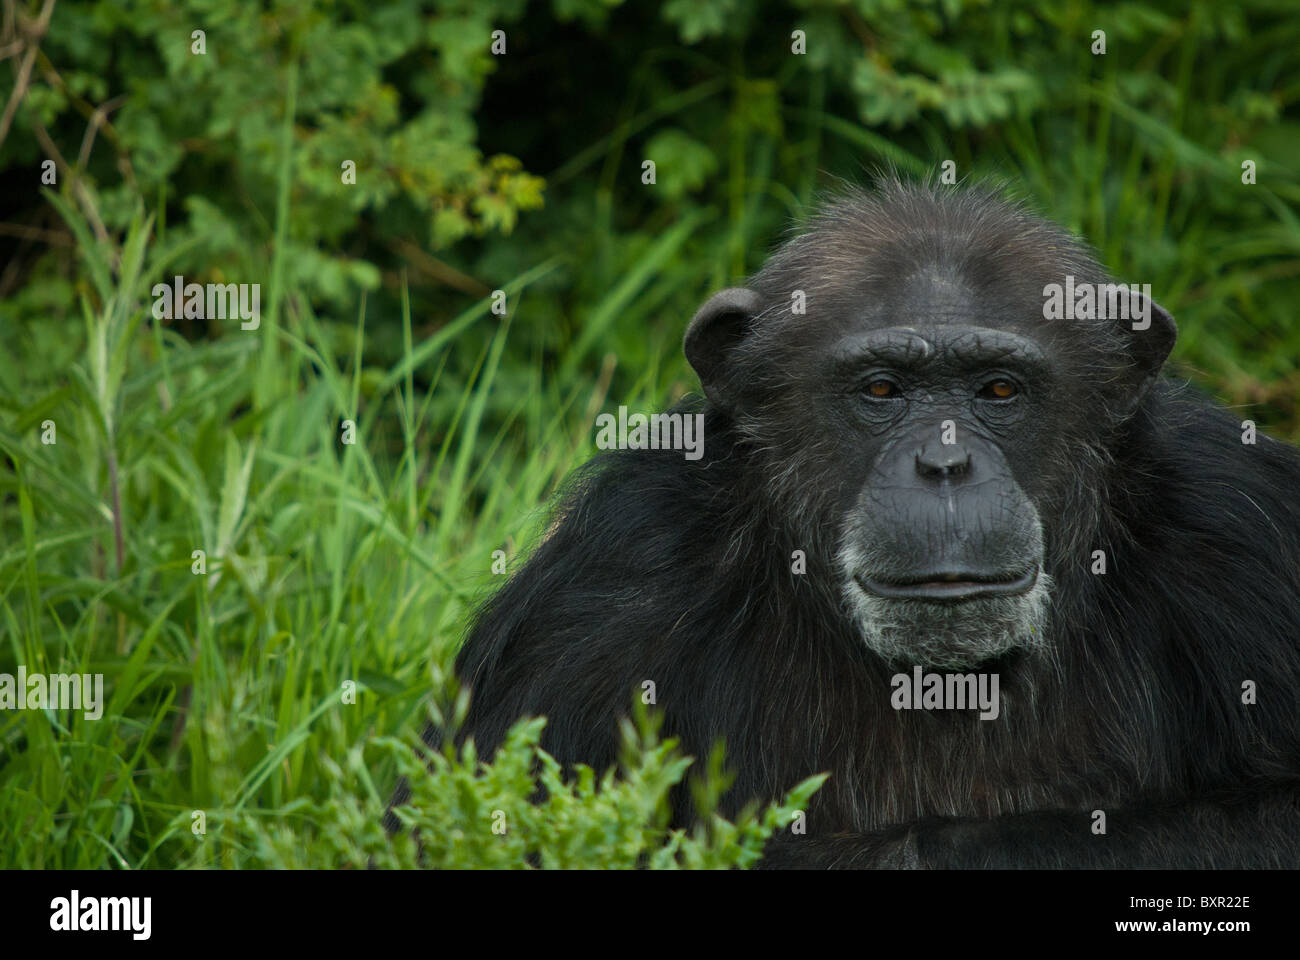 An aging Chimpanzee with greying hair - Stock Image